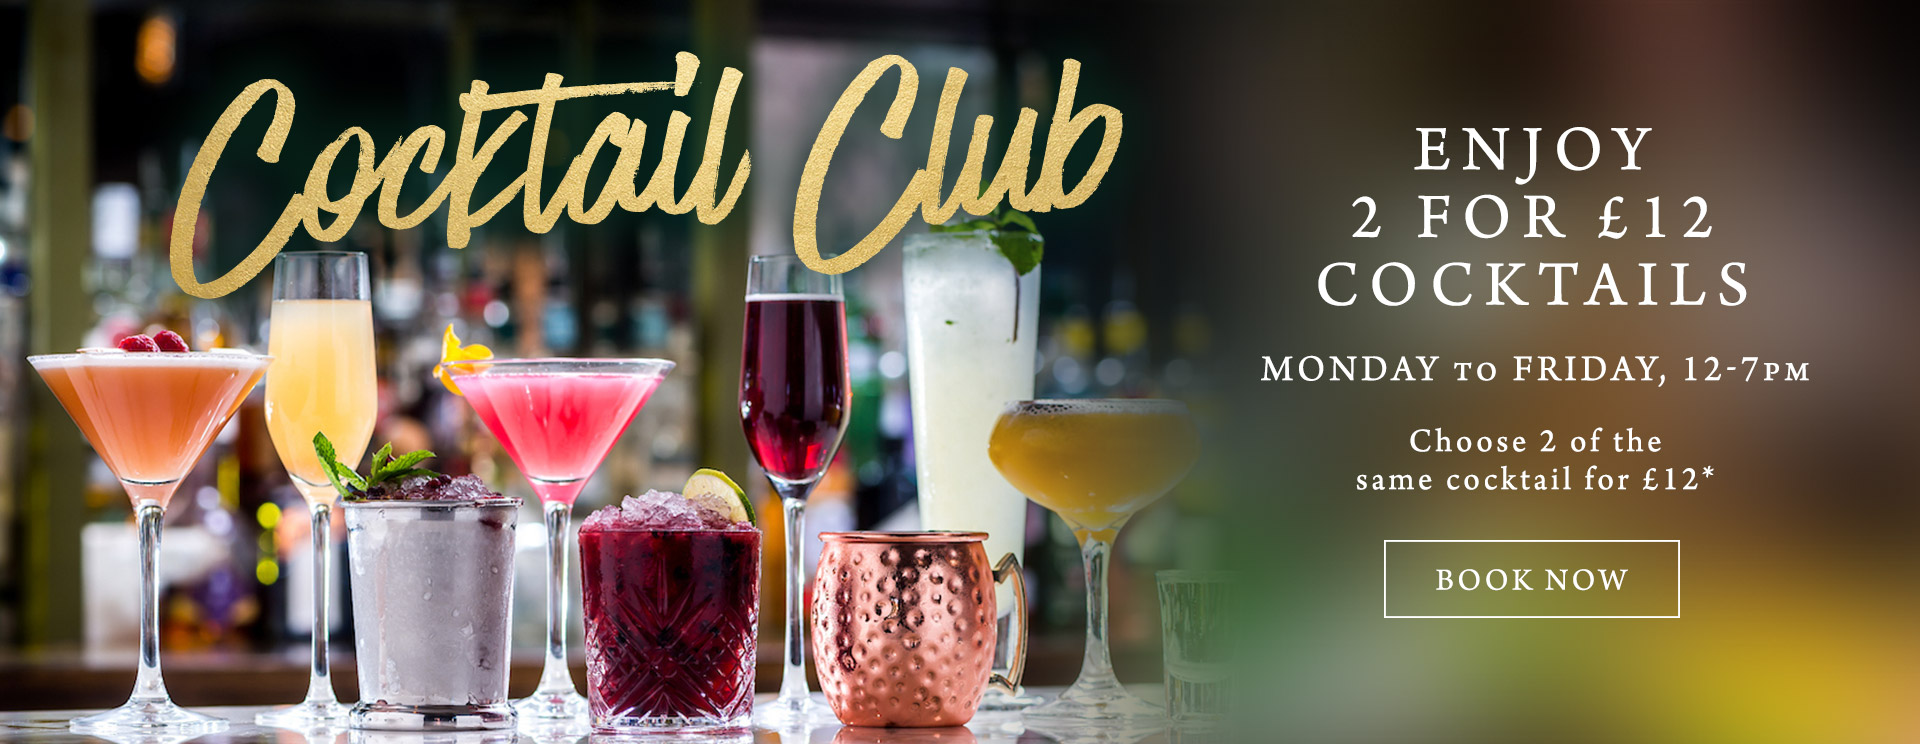 2 for £12 cocktails at The Tudor Rose